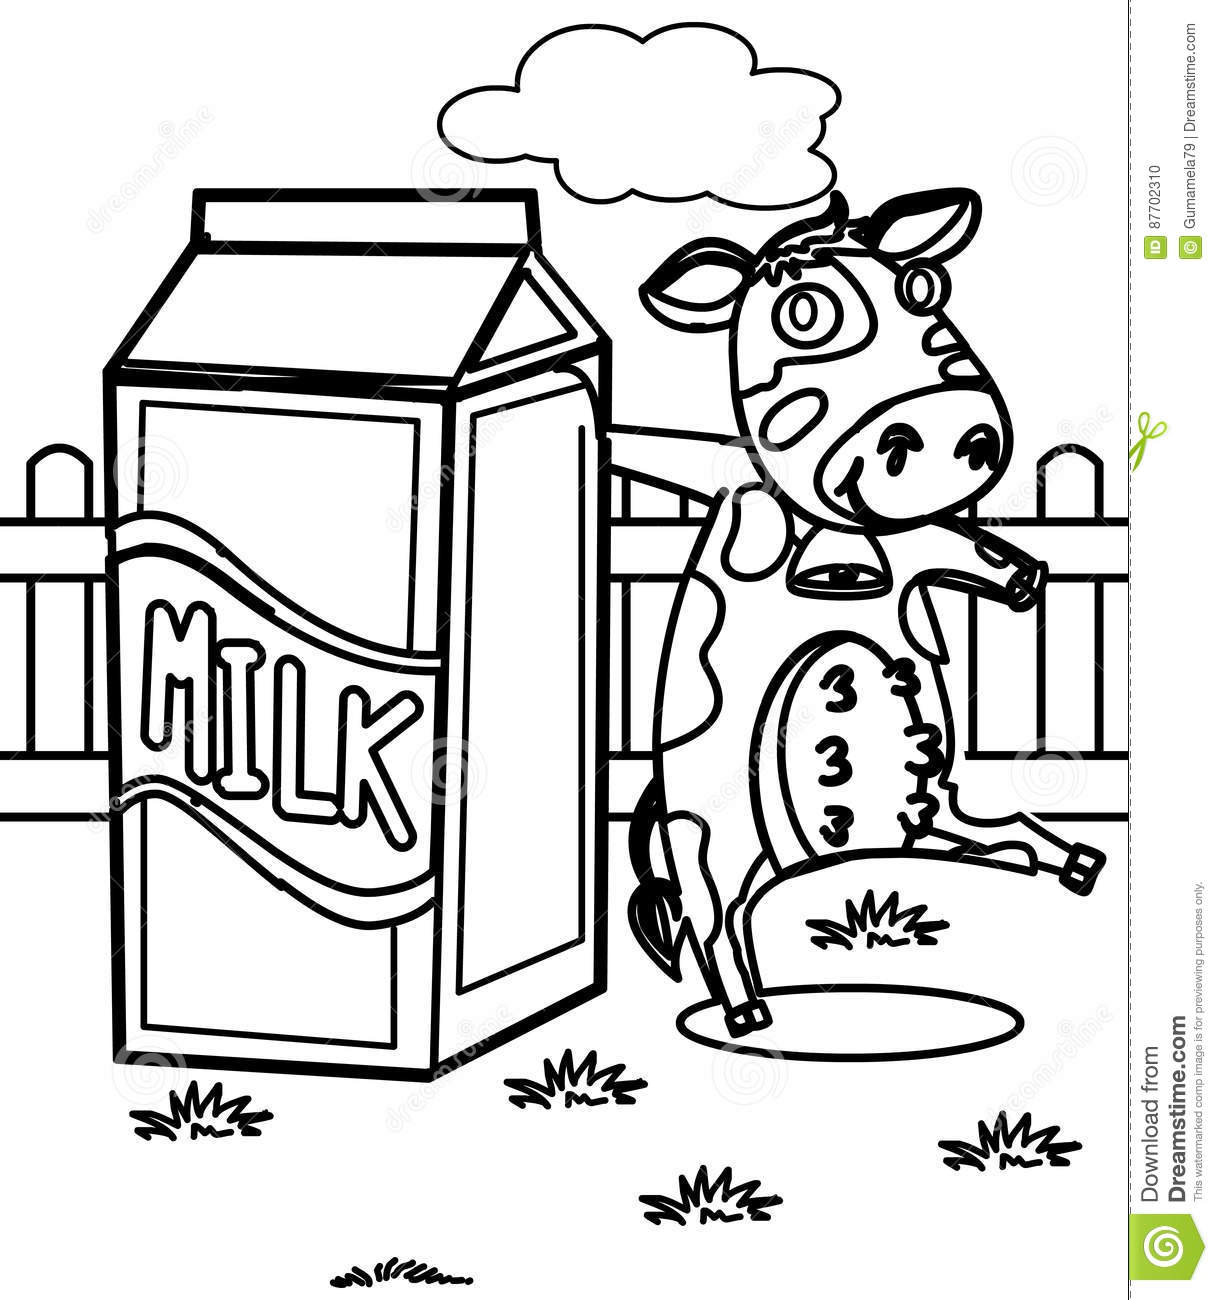 milk with a cow coloring page